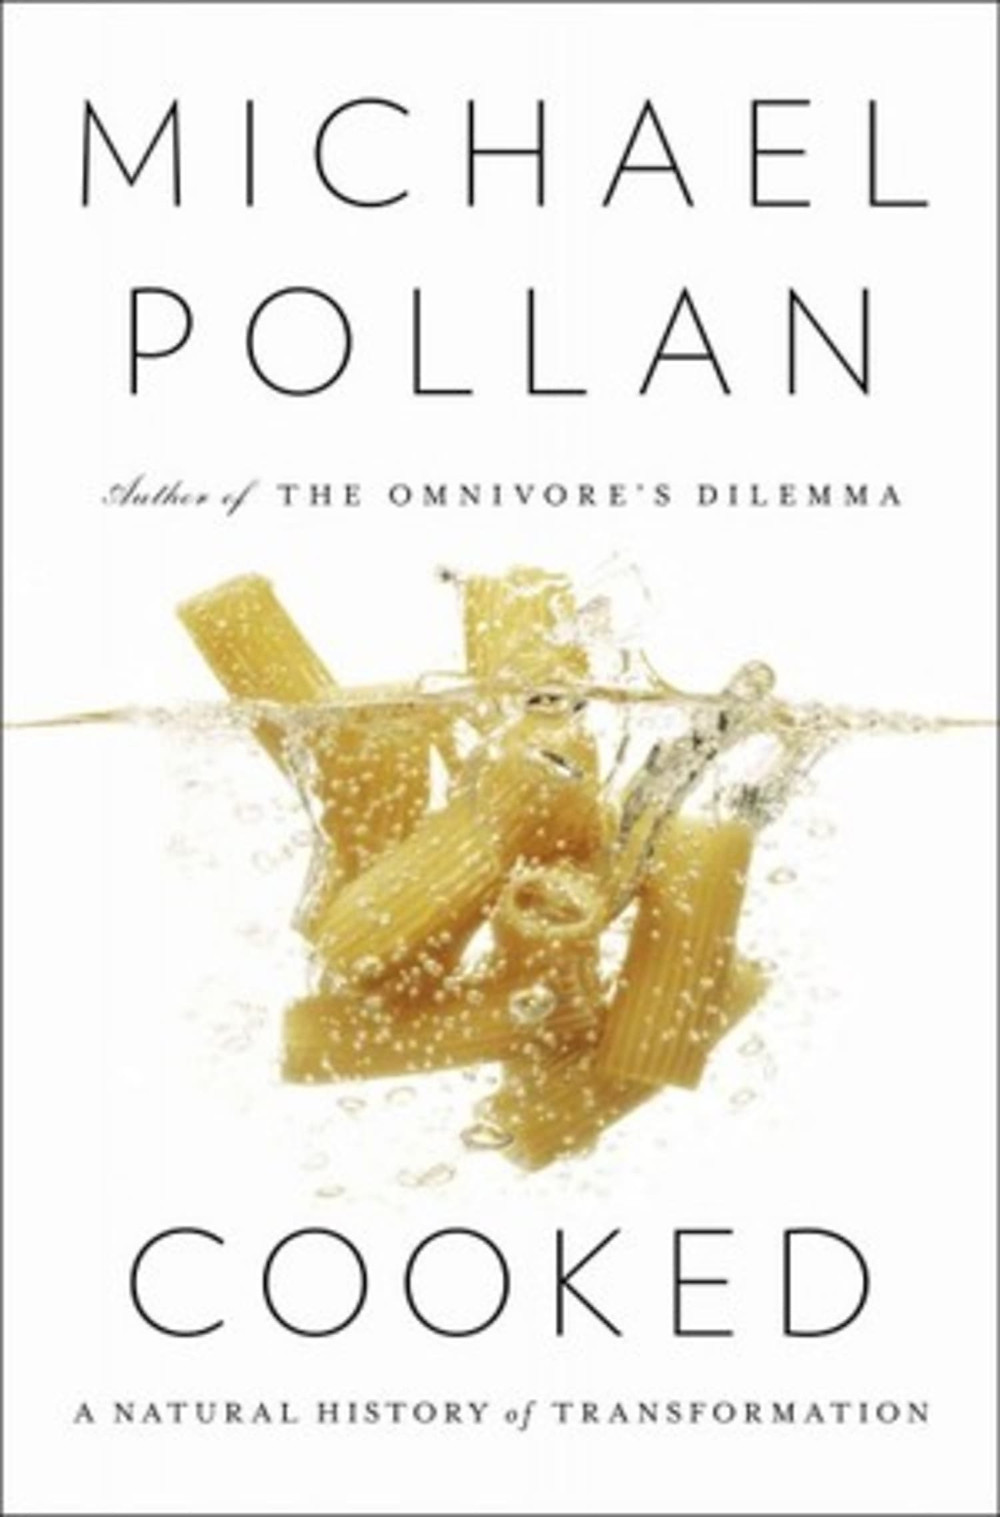 Cooked by Michael Pollan - 4 out of 5 Stars